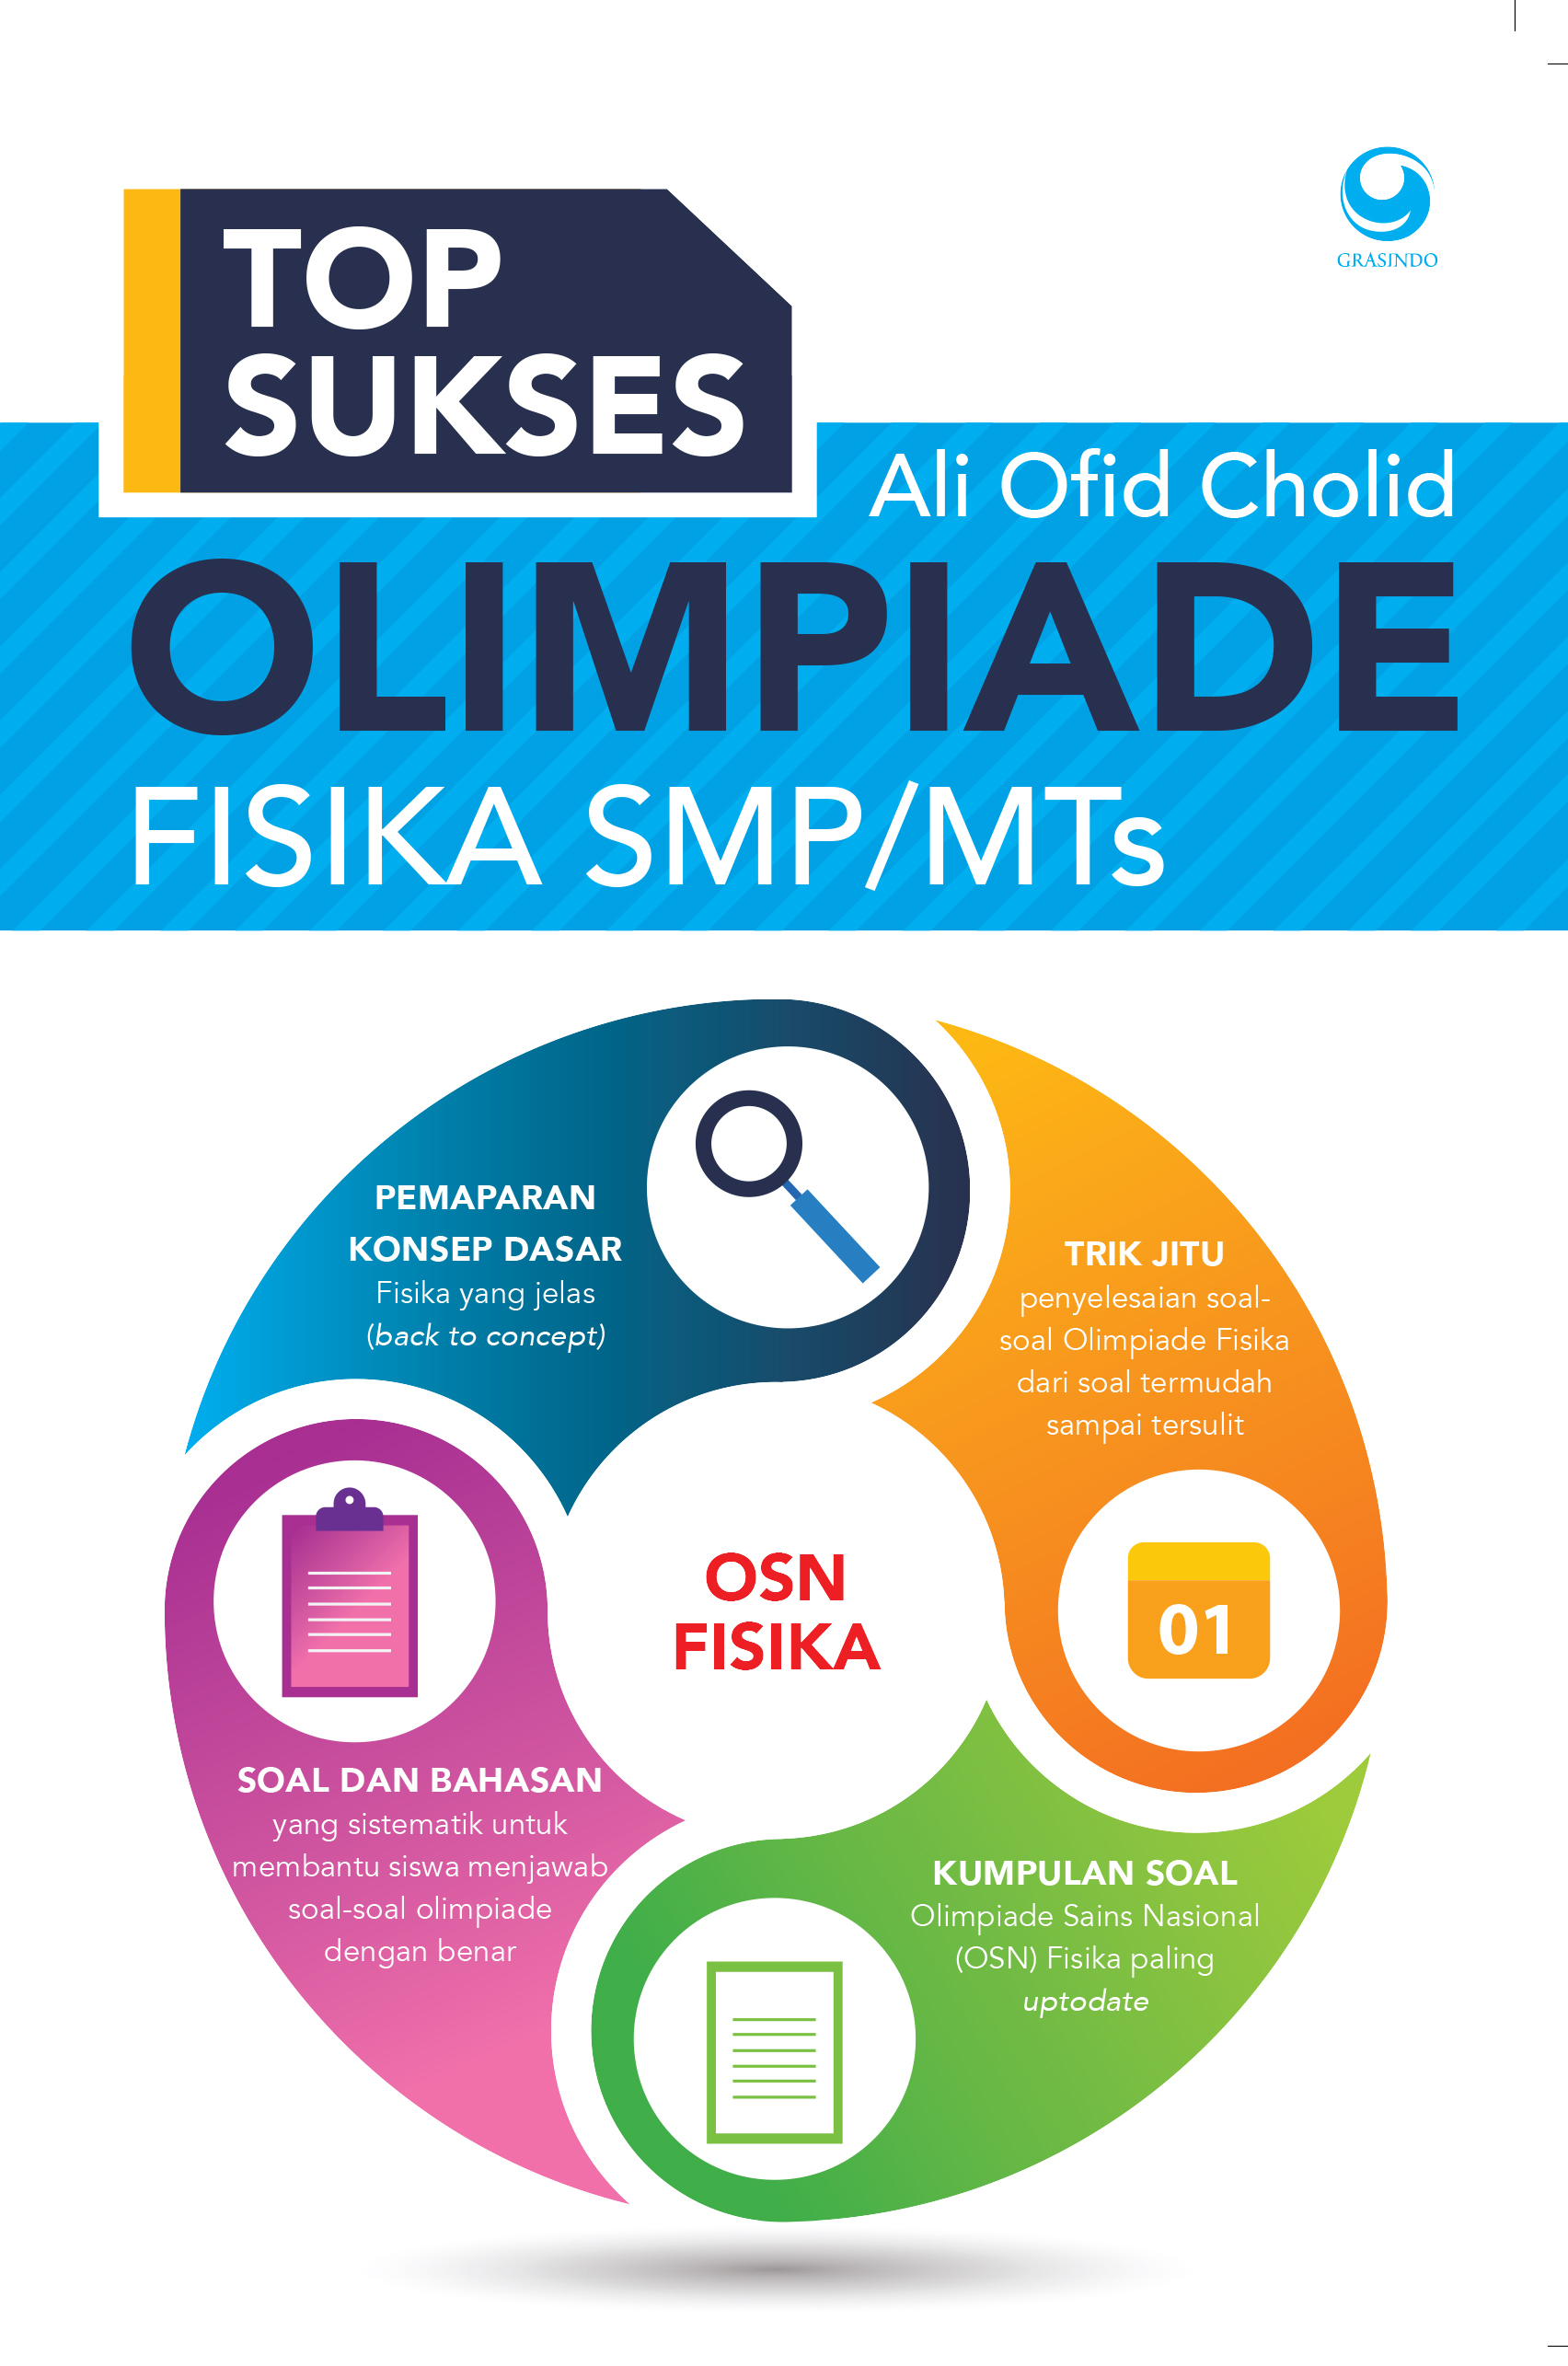 Top Sukses Olimpiade Fisika SMP/MTs